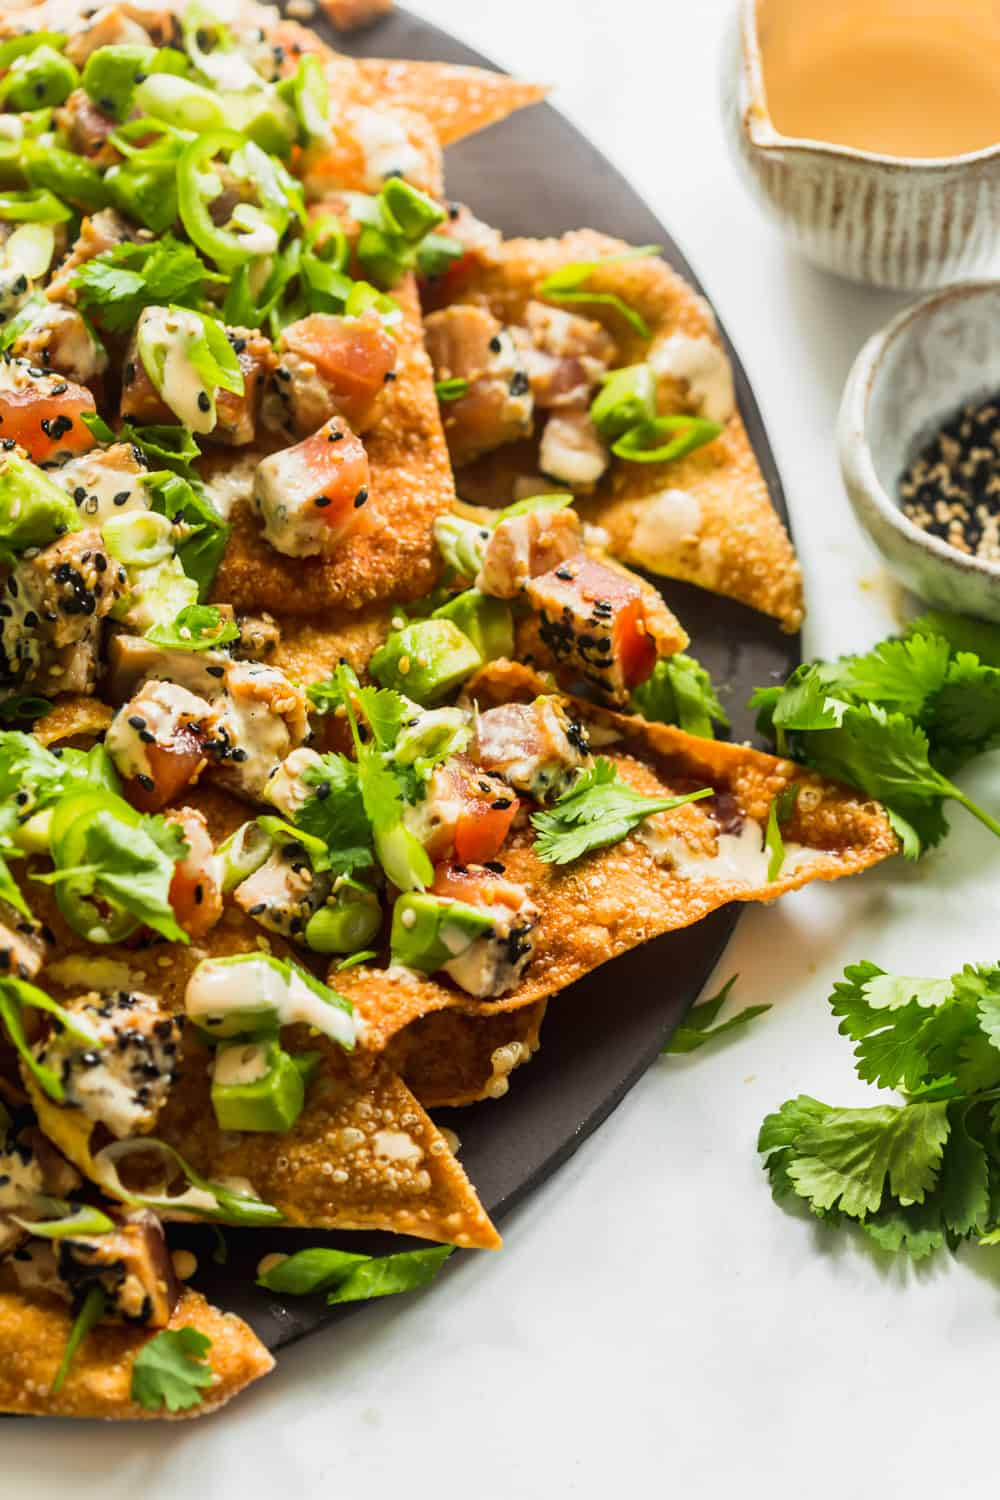 Close up of a plate of wonton nachos covered in tuna, avocado, and cilantro.